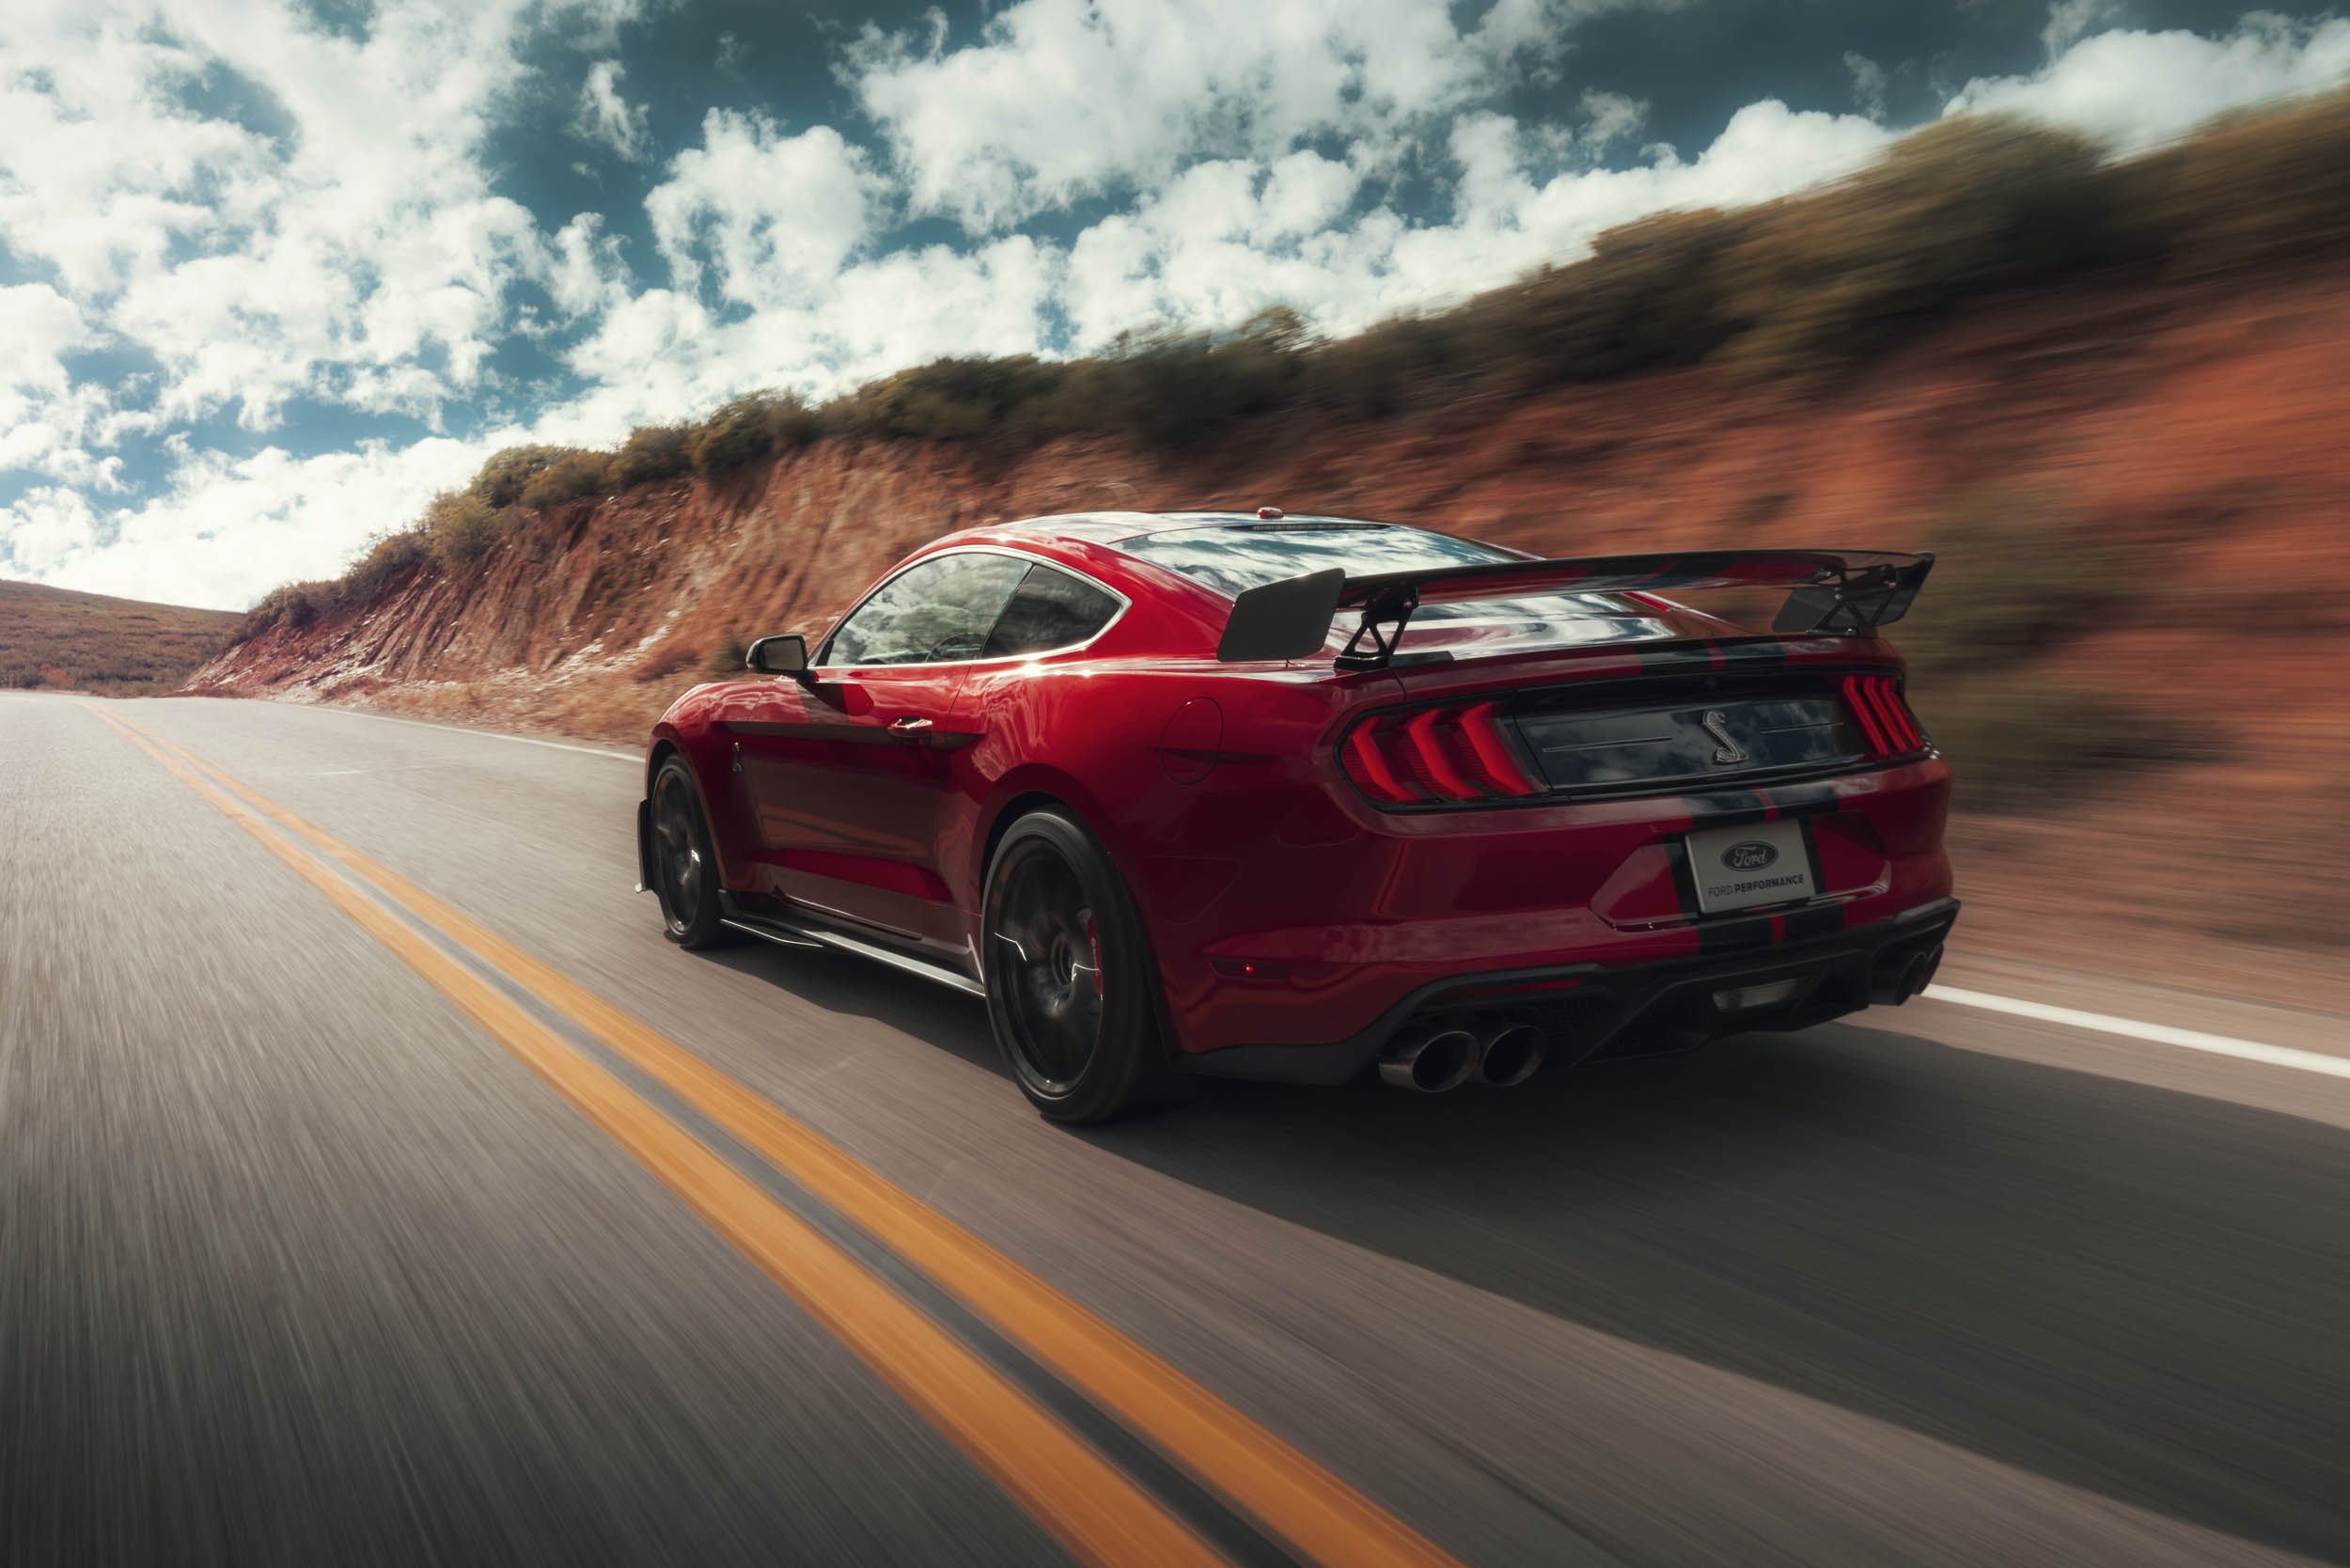 2020 Mustang Shelby GT500 driving rear 3/4